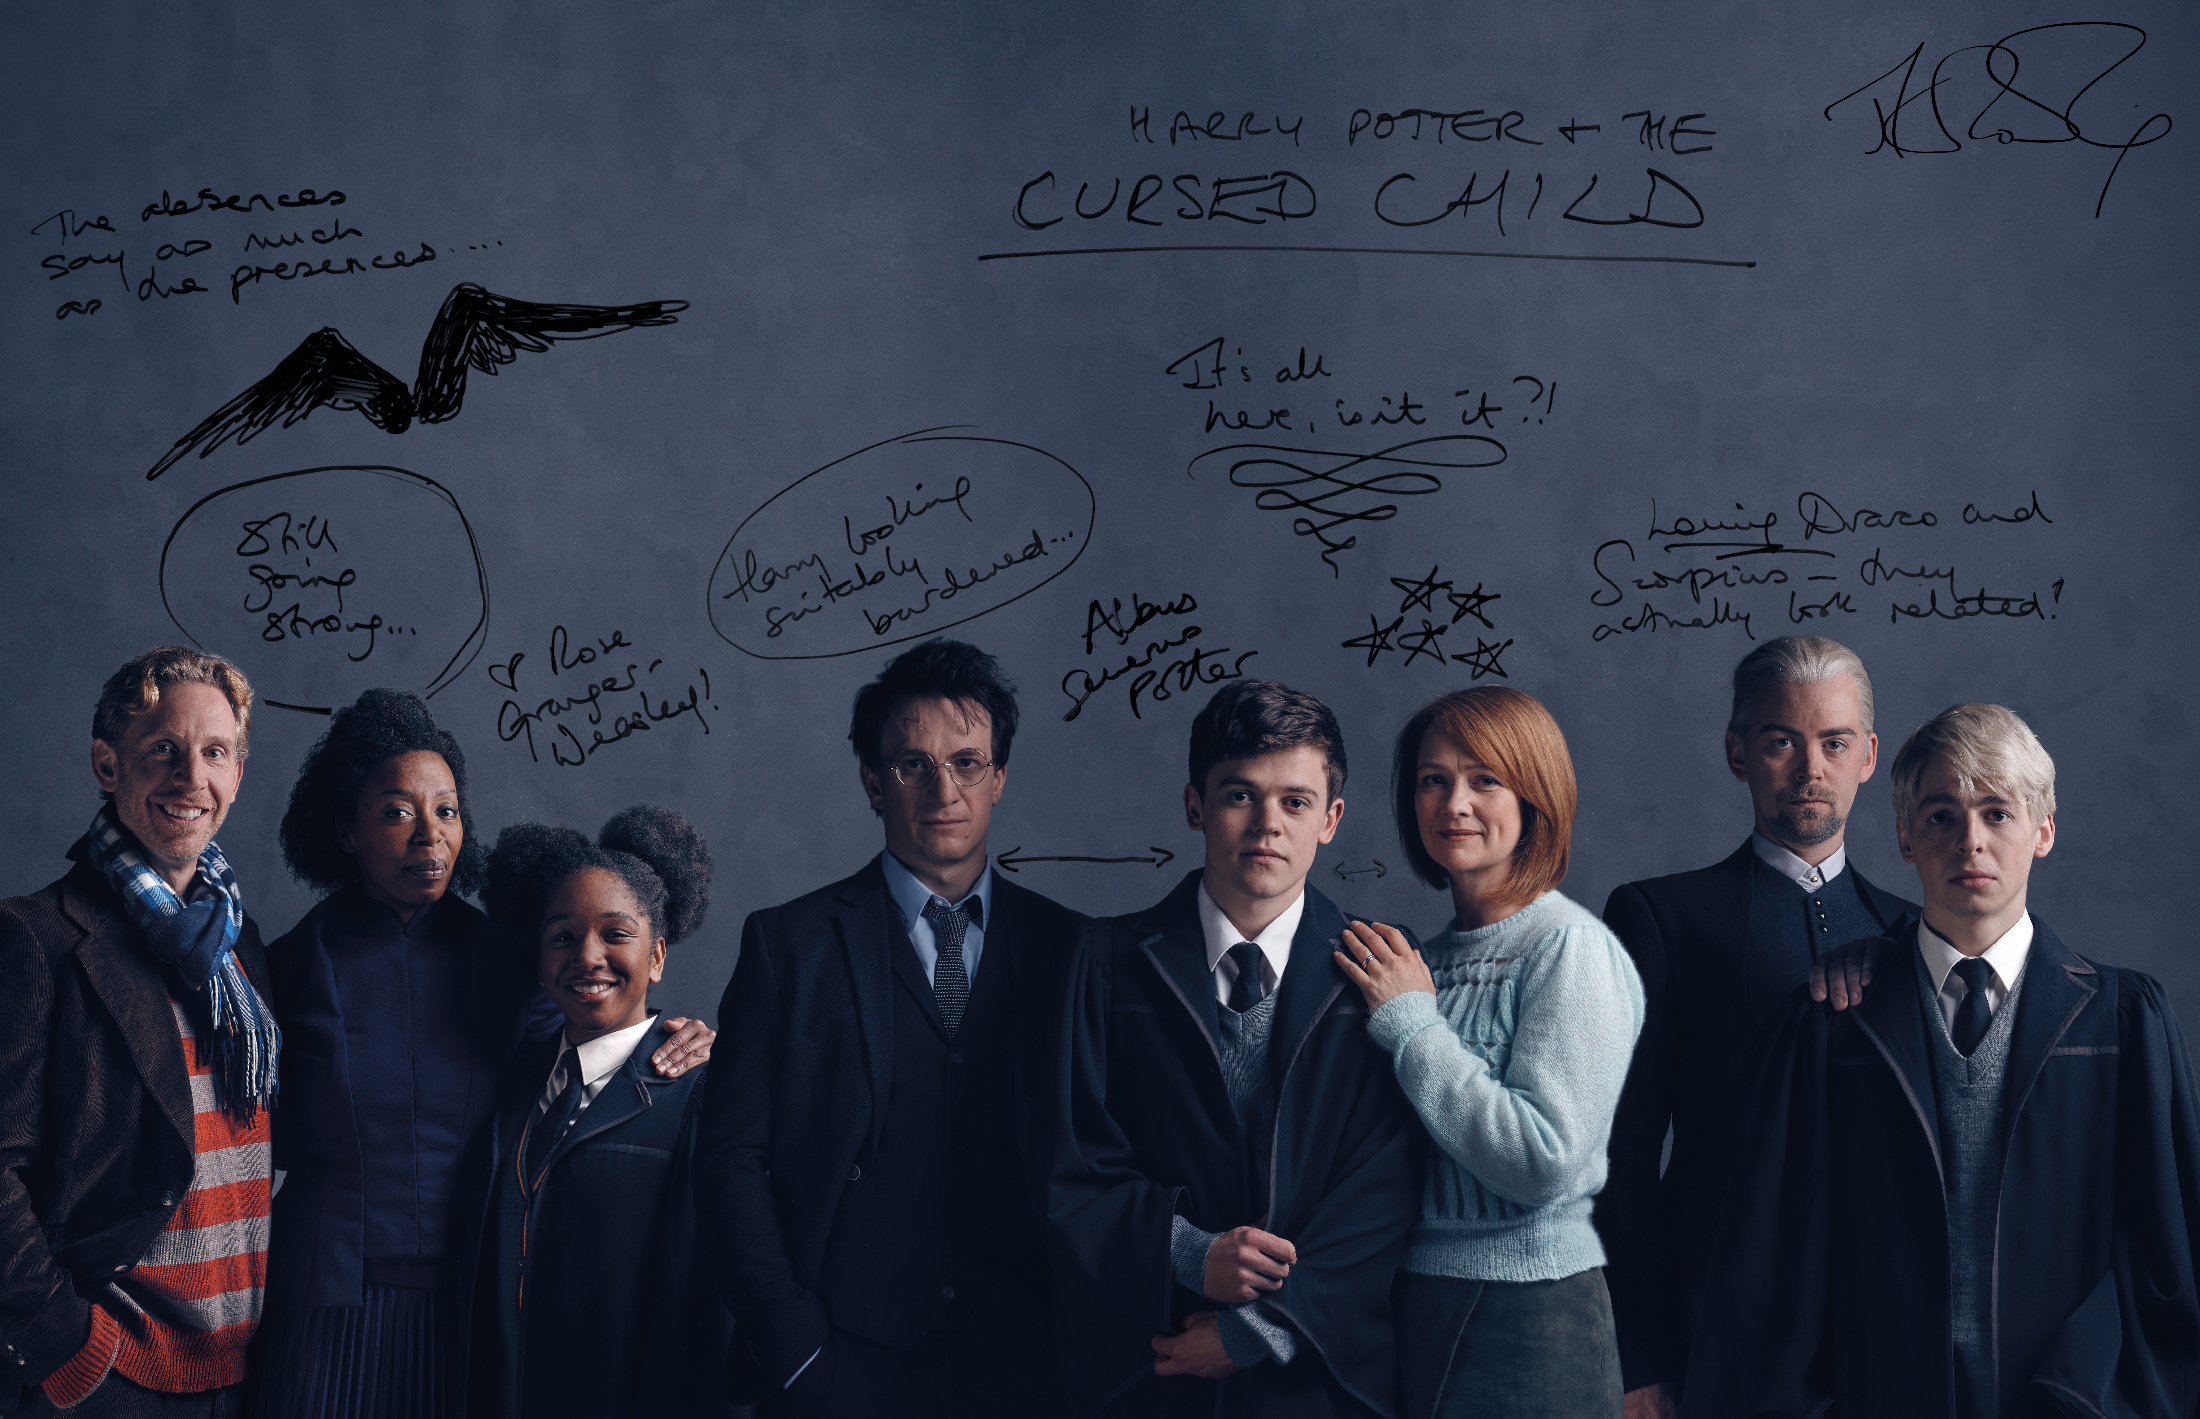 Resultado de imagen para harry potter and the cursed child